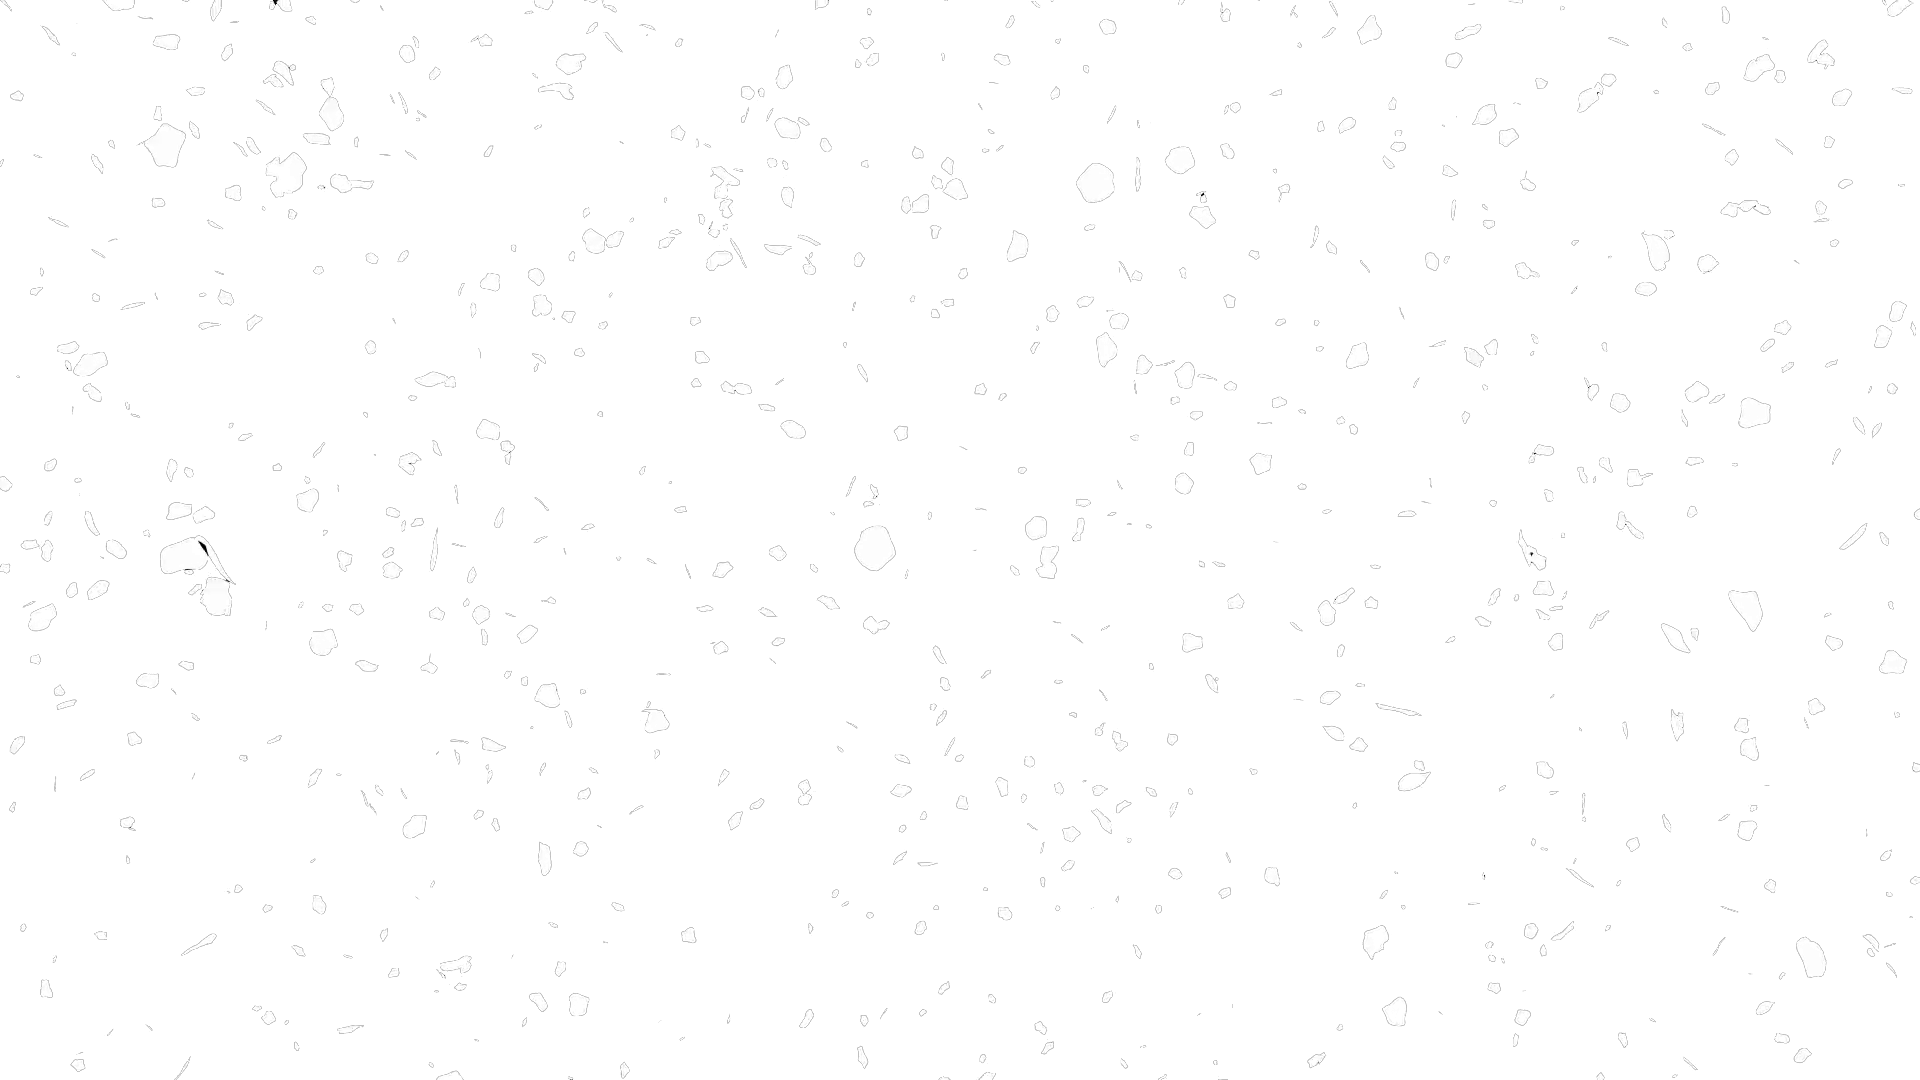 Snow falling background png. Images transparent free download